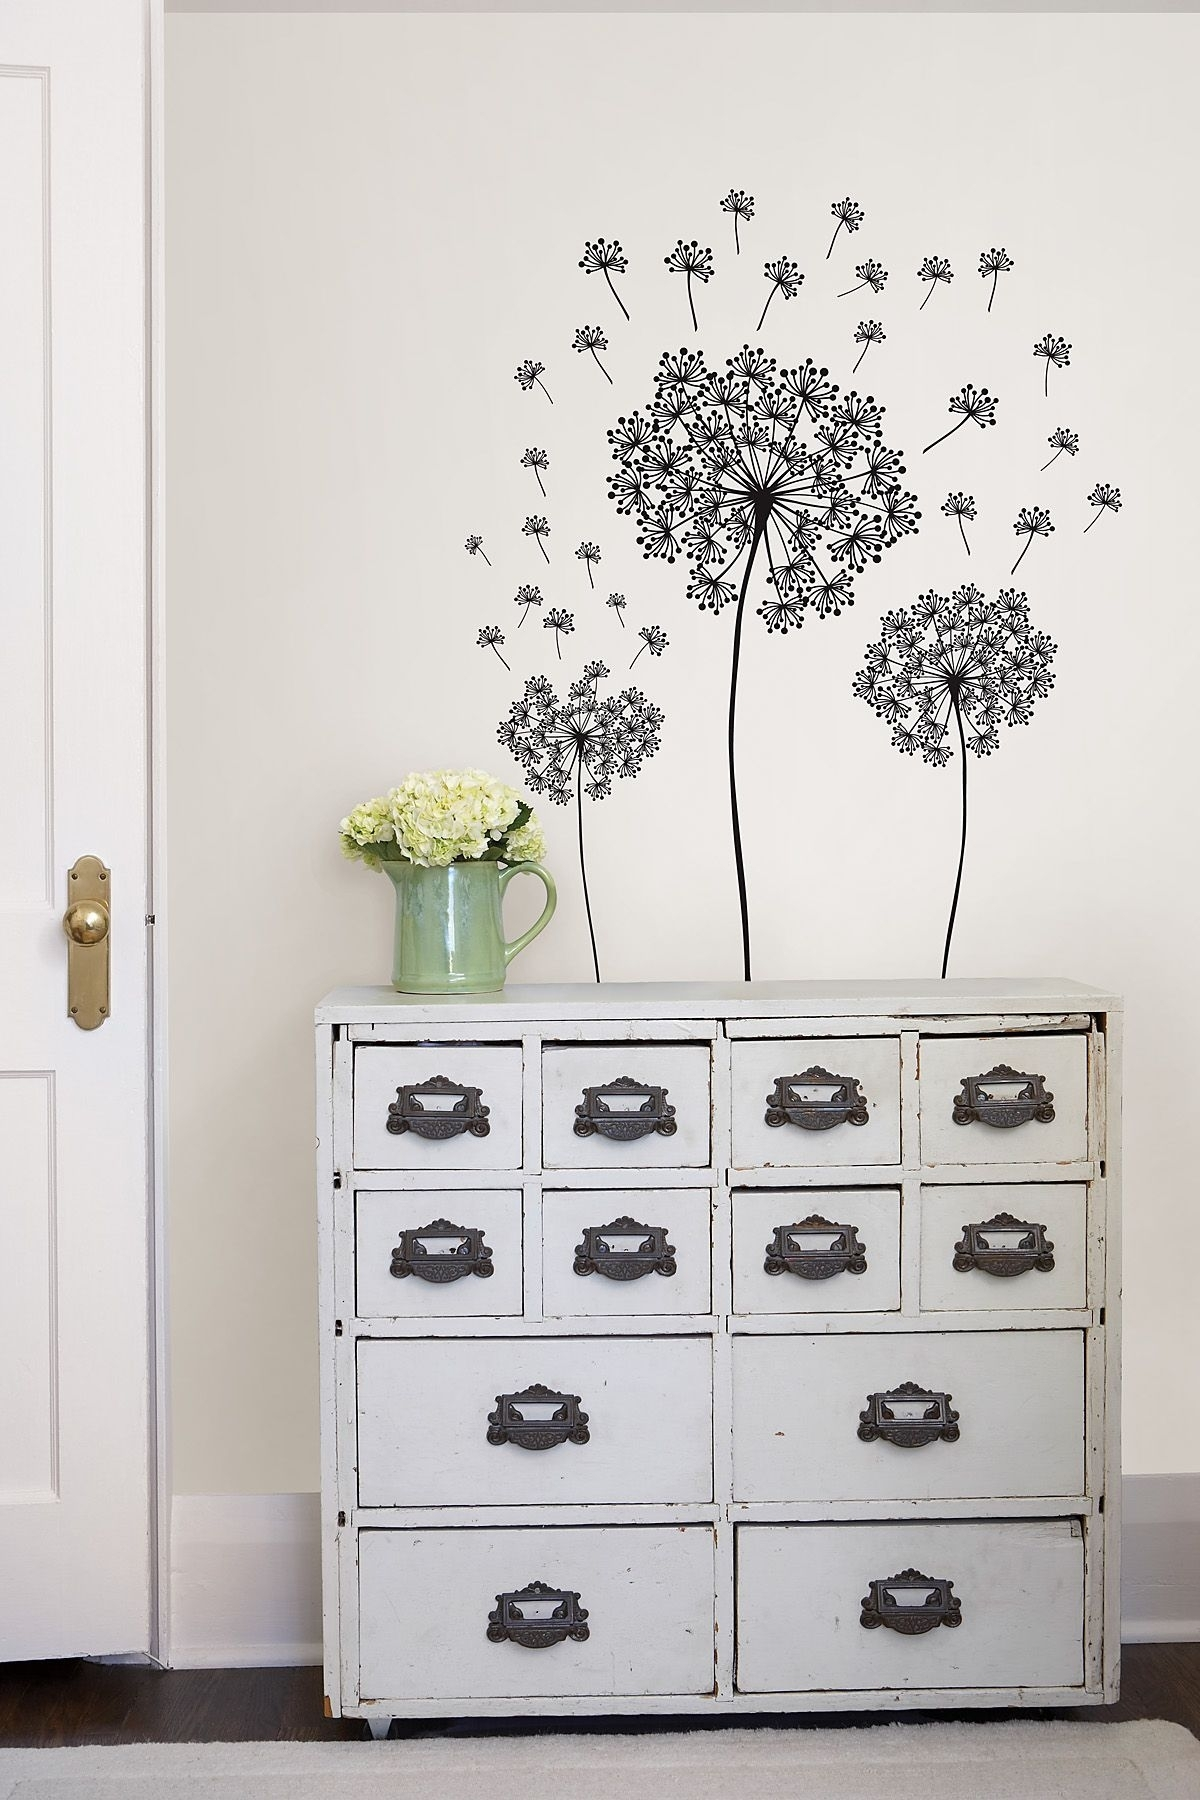 Dandelion Wall Art Sticker Kit Pertaining To Recent Dandelion Wall Art (View 18 of 20)